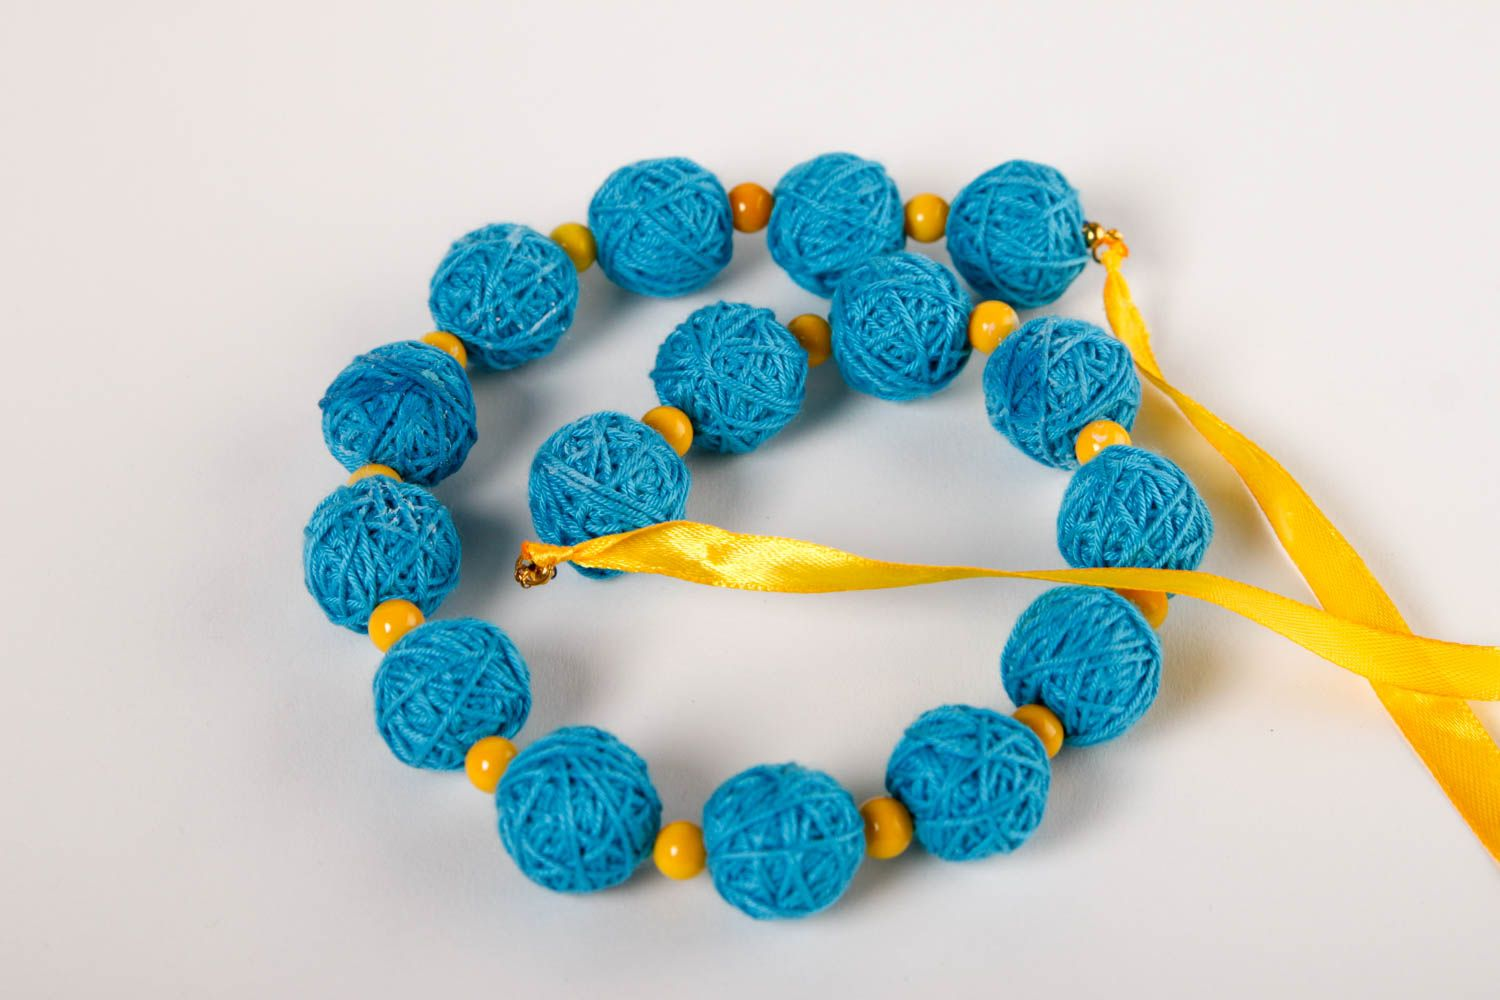 Stylish handmade textile ball necklace artisan jewelry designs gifts for her photo 2